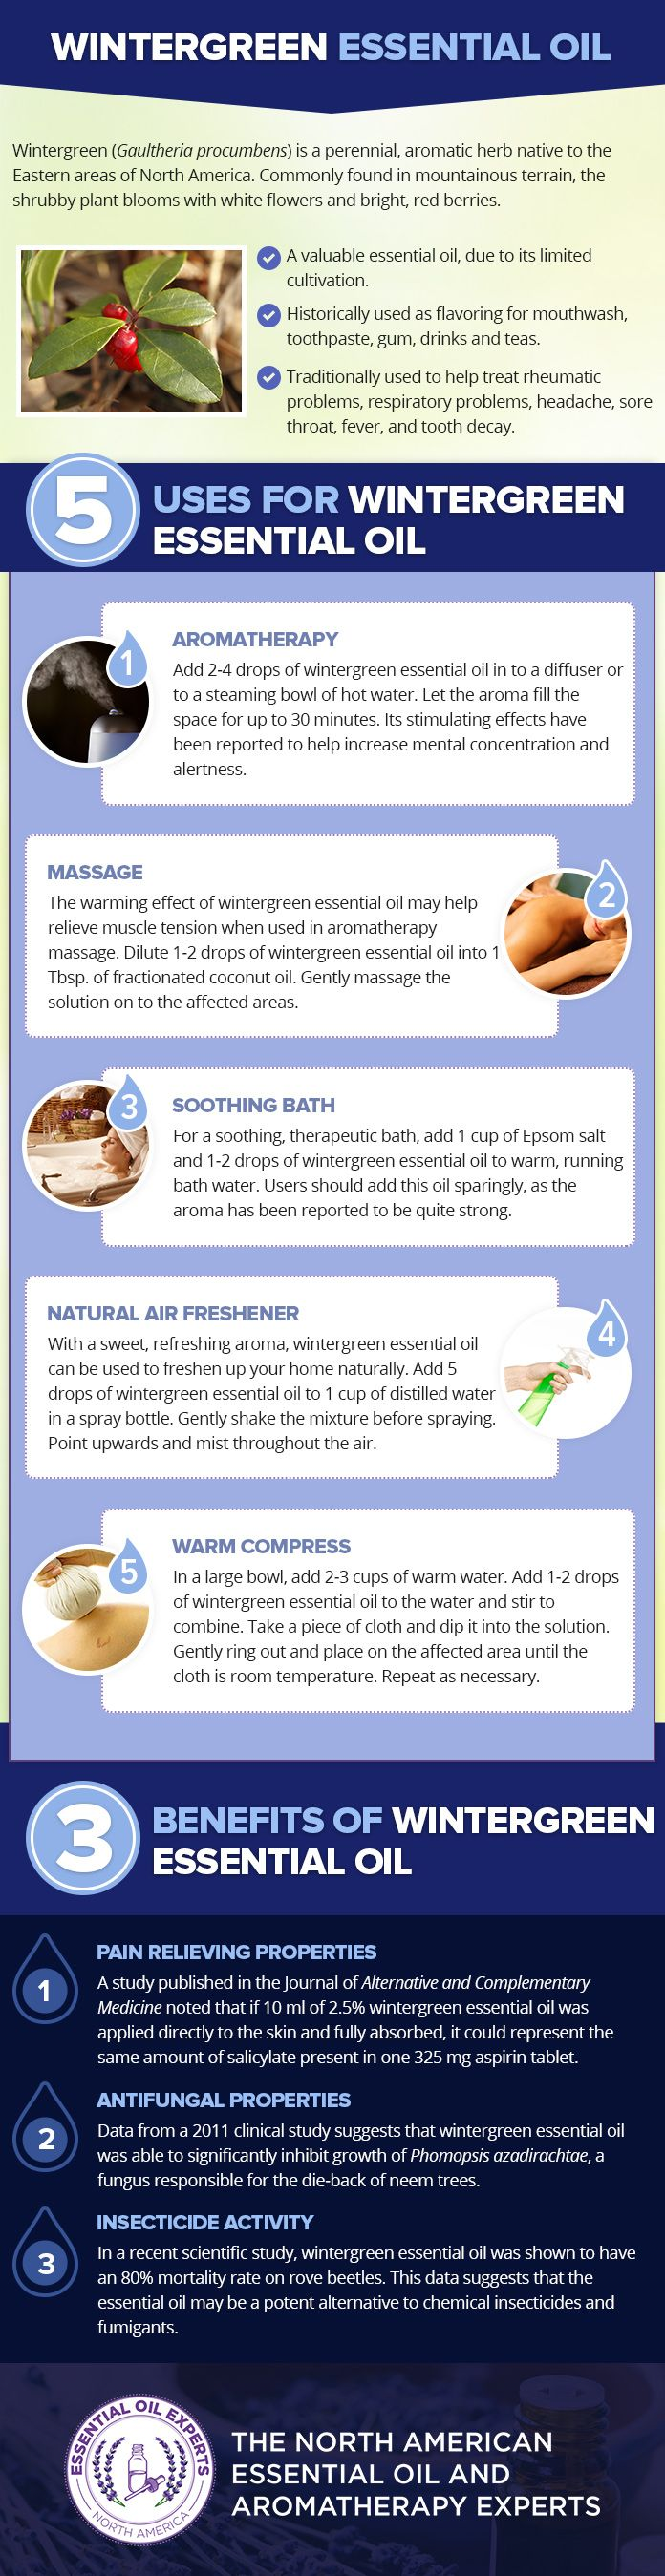 Wintergreen Essential Oil Uses & Benefits